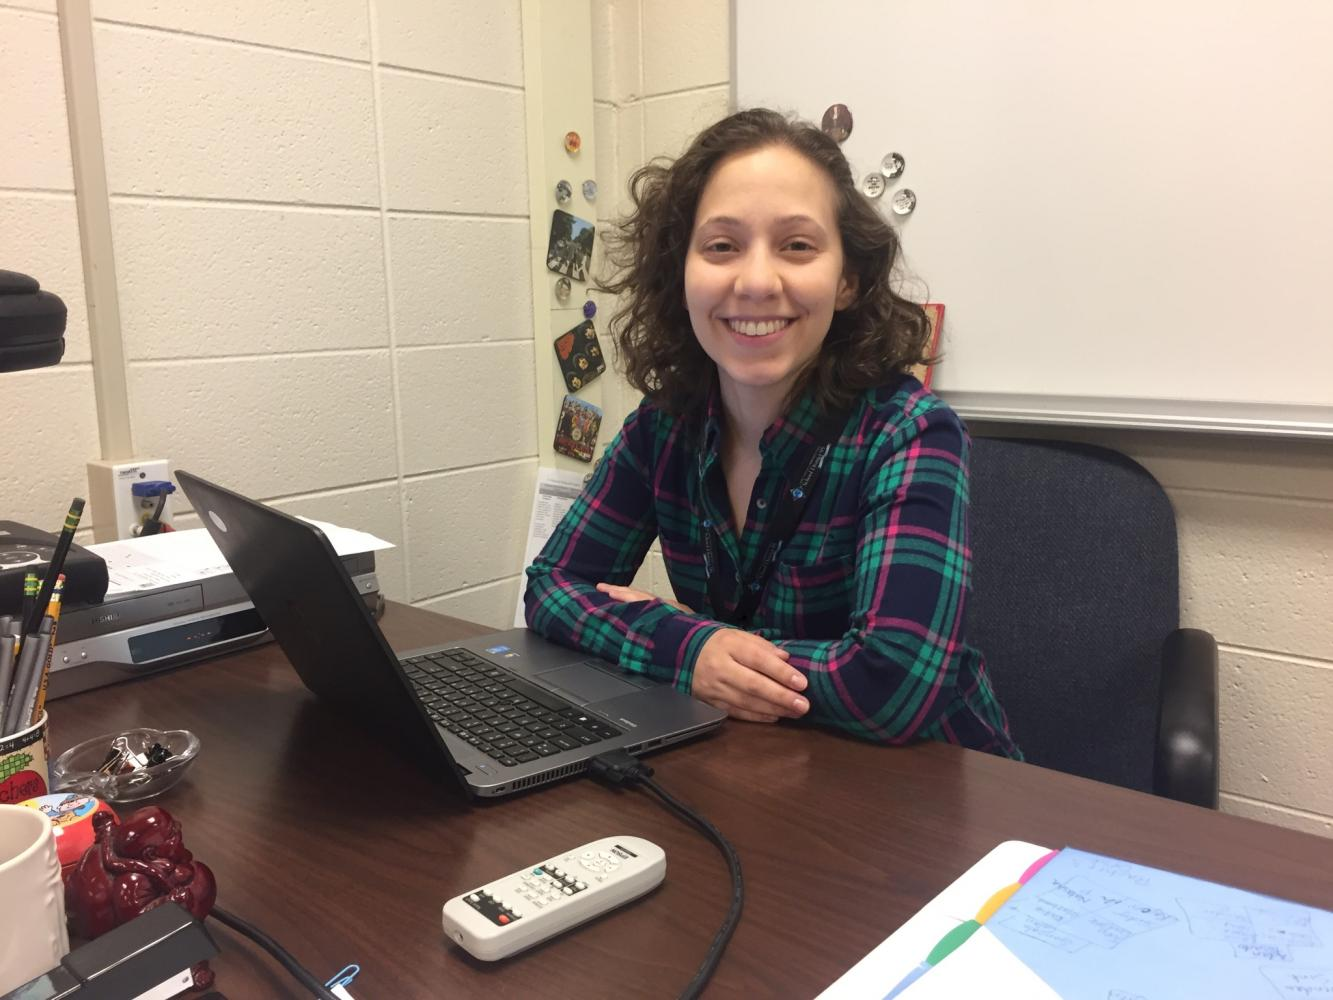 Kim Ferraro, new social studies teacher, graduated from University of Illinois in 2015. Standing 4 feet and 11 inches tall, Ferraro loves teaching, cooking, and watching Spongebob every Saturday morning.